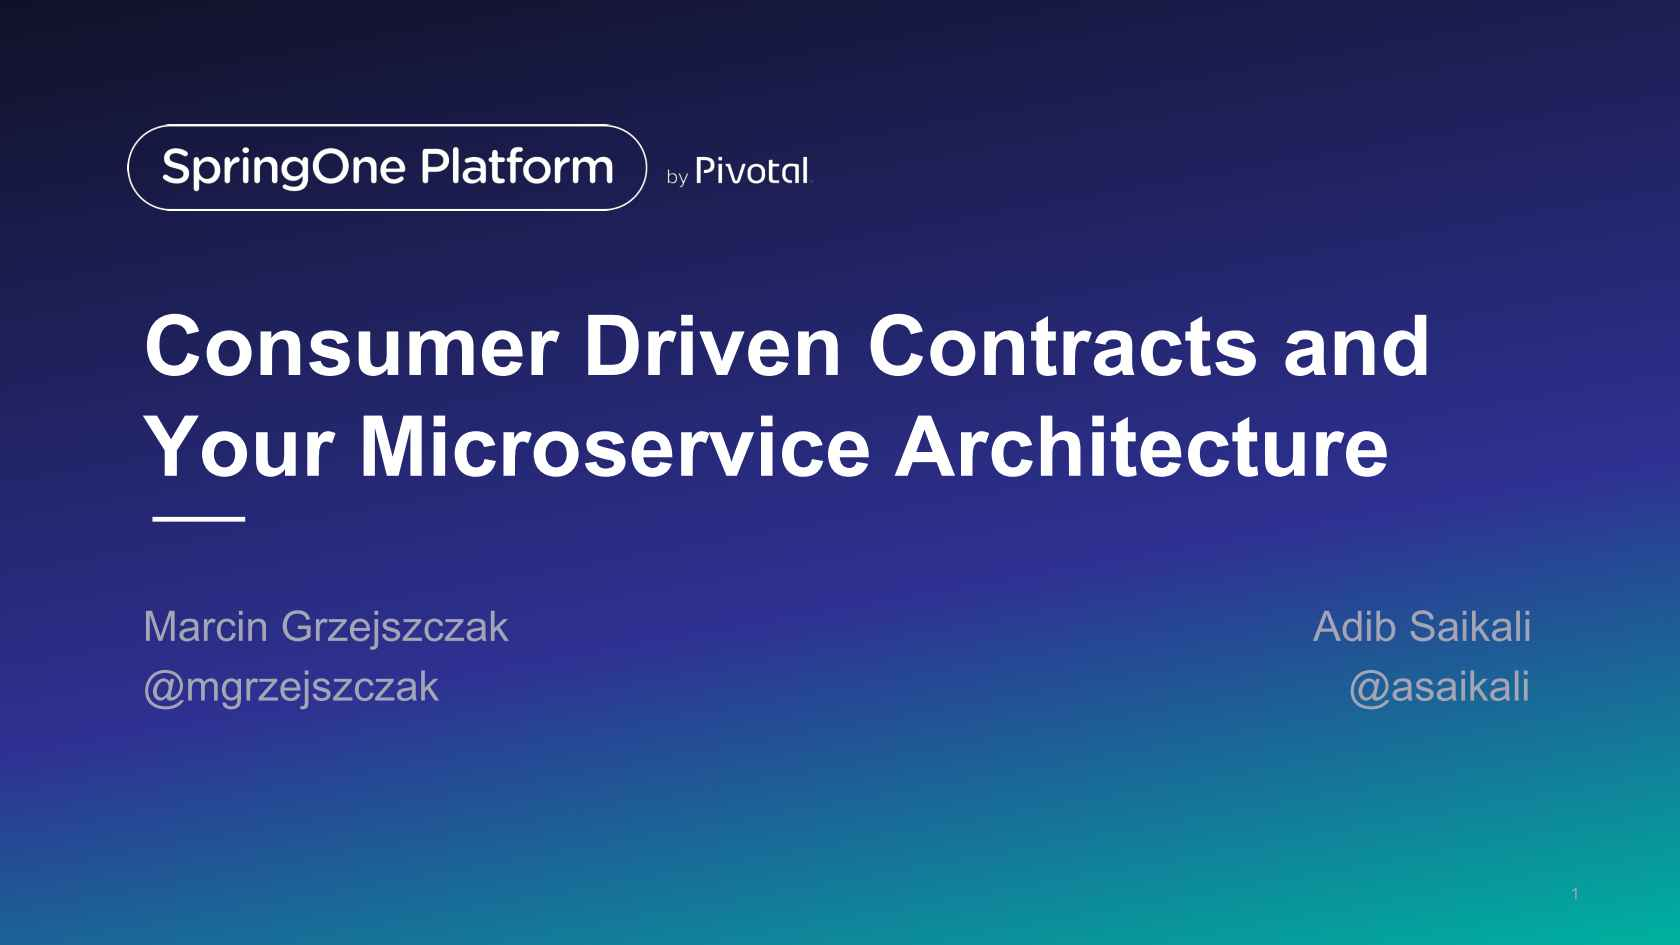 Consumer-Driven Contracts and Your Microservice Architecture